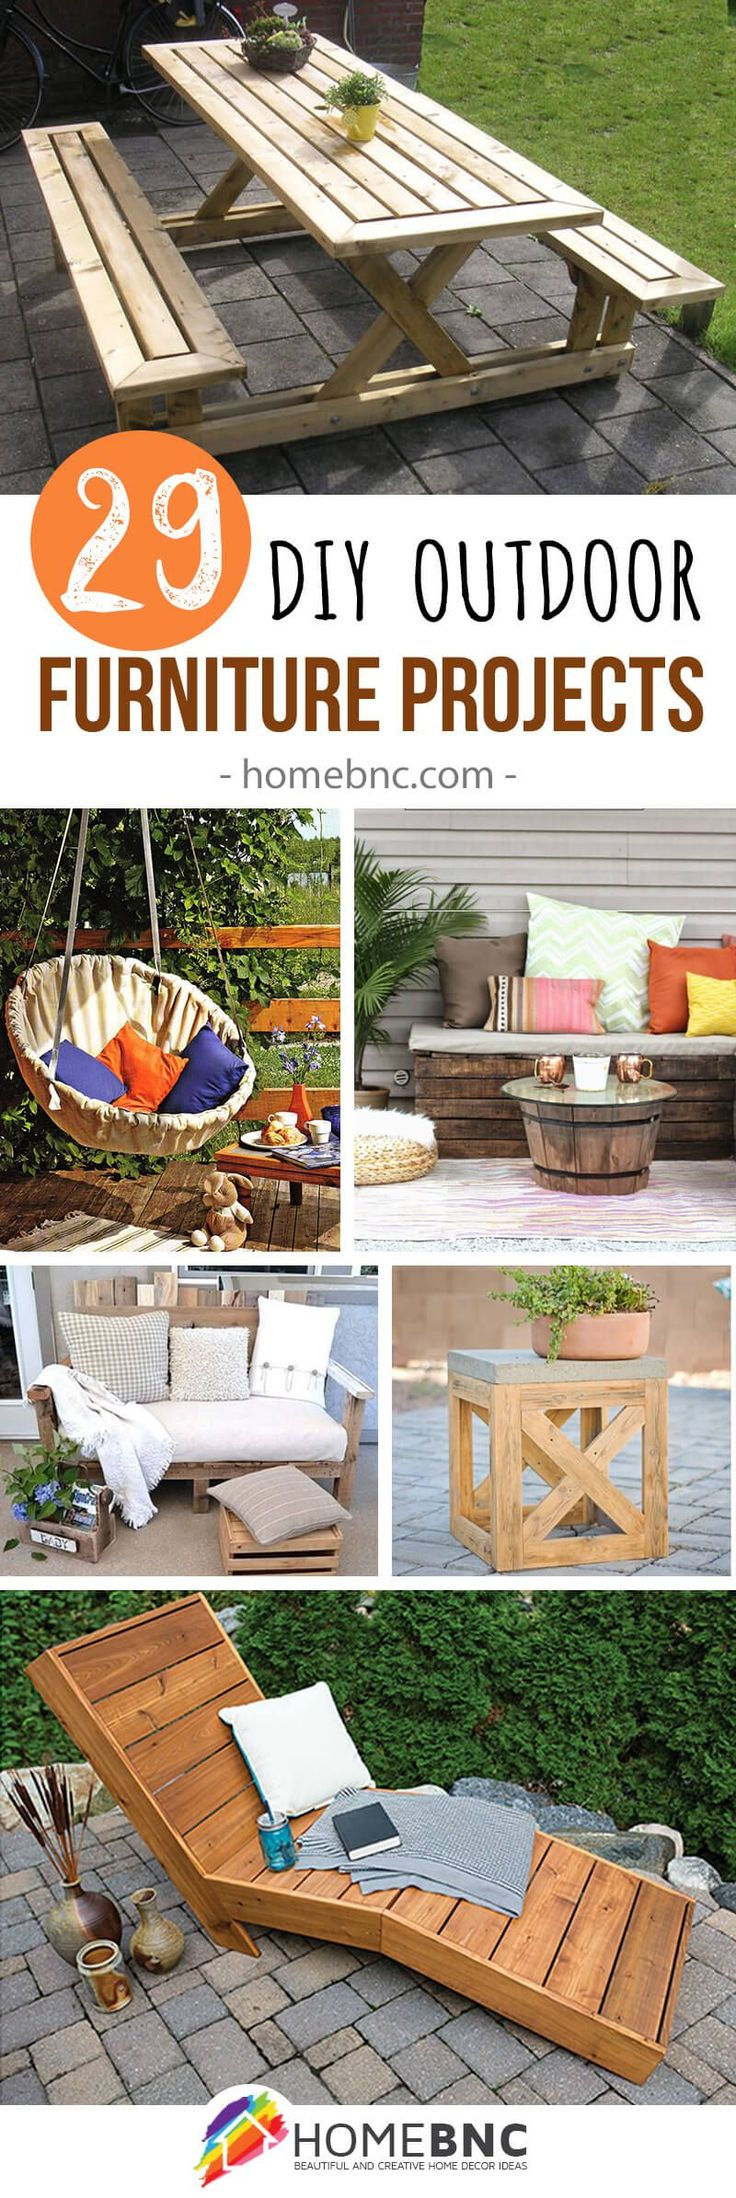 29 DIY Outdoor Furniture Projects To Beautify